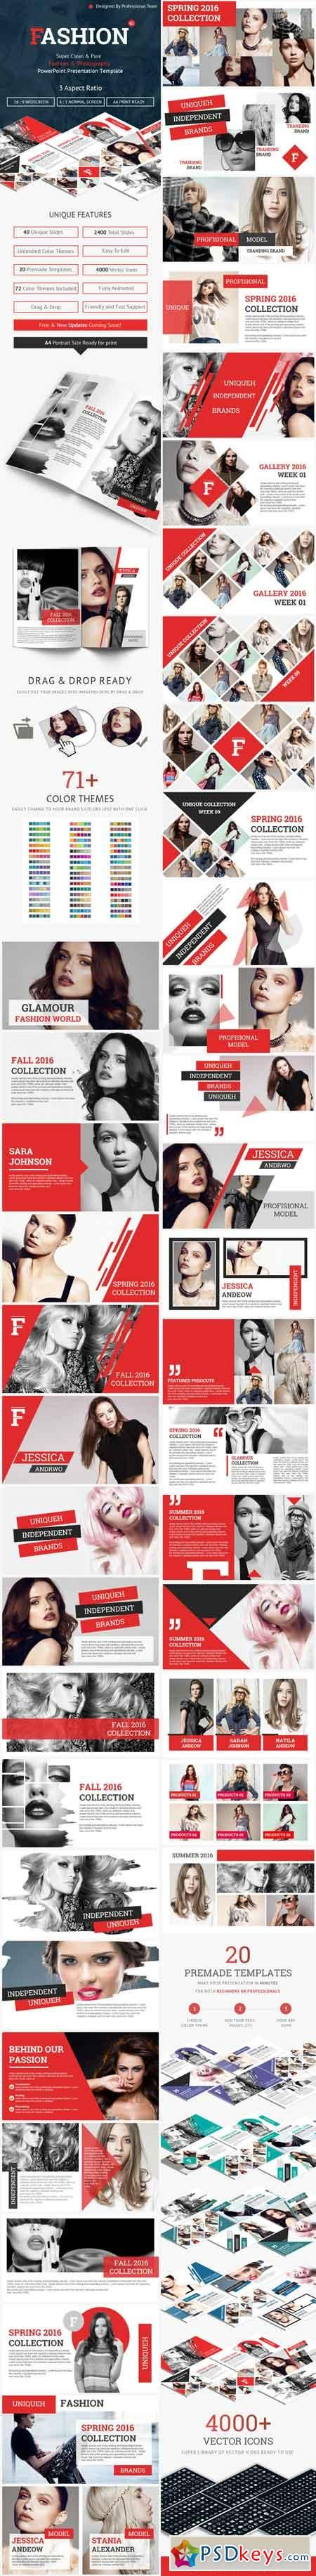 Fashion and Photography PowerPoint Presentation Template 15341625